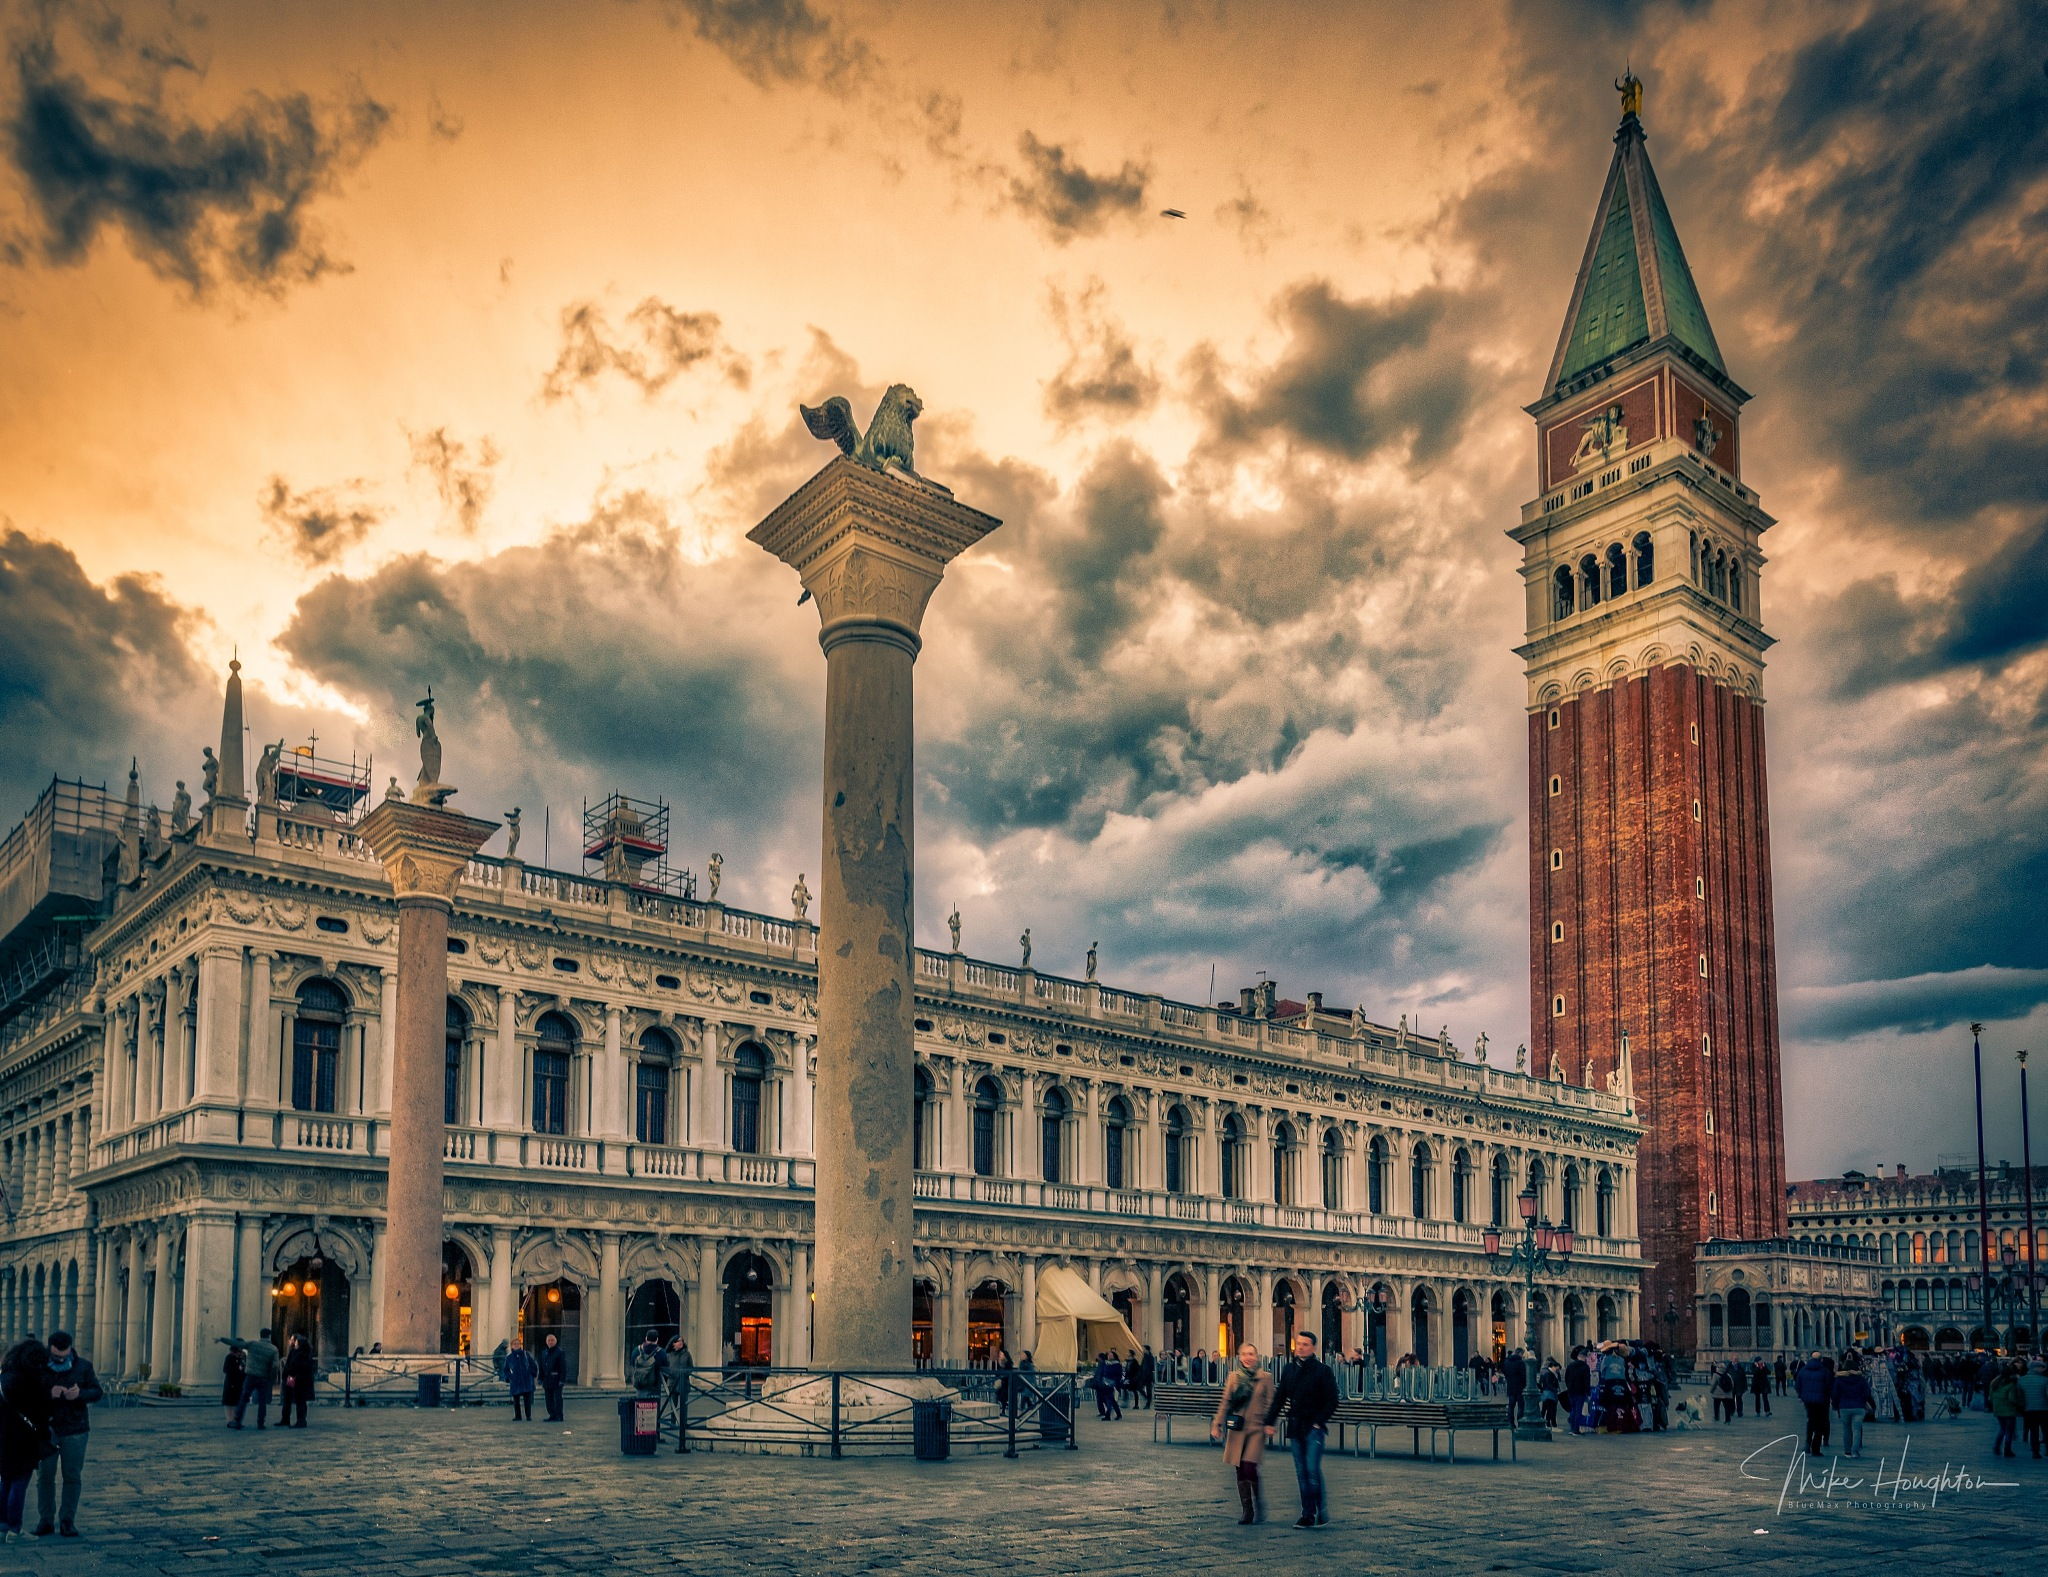 Entrance to the Piazza San Marco, Venice, Italy. by BlueMax Photography